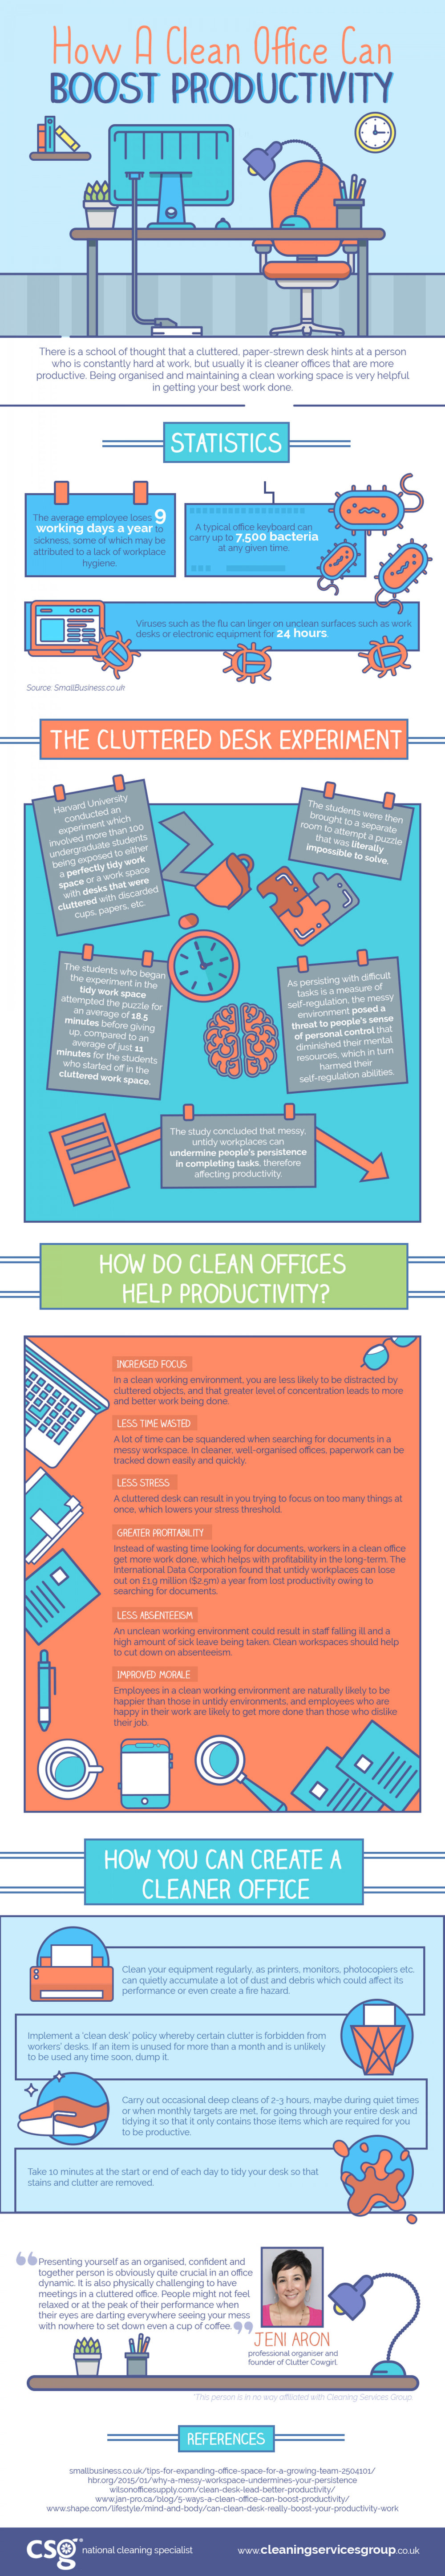 how-a-clean-office-can-boost-productivity-infographic.jpg